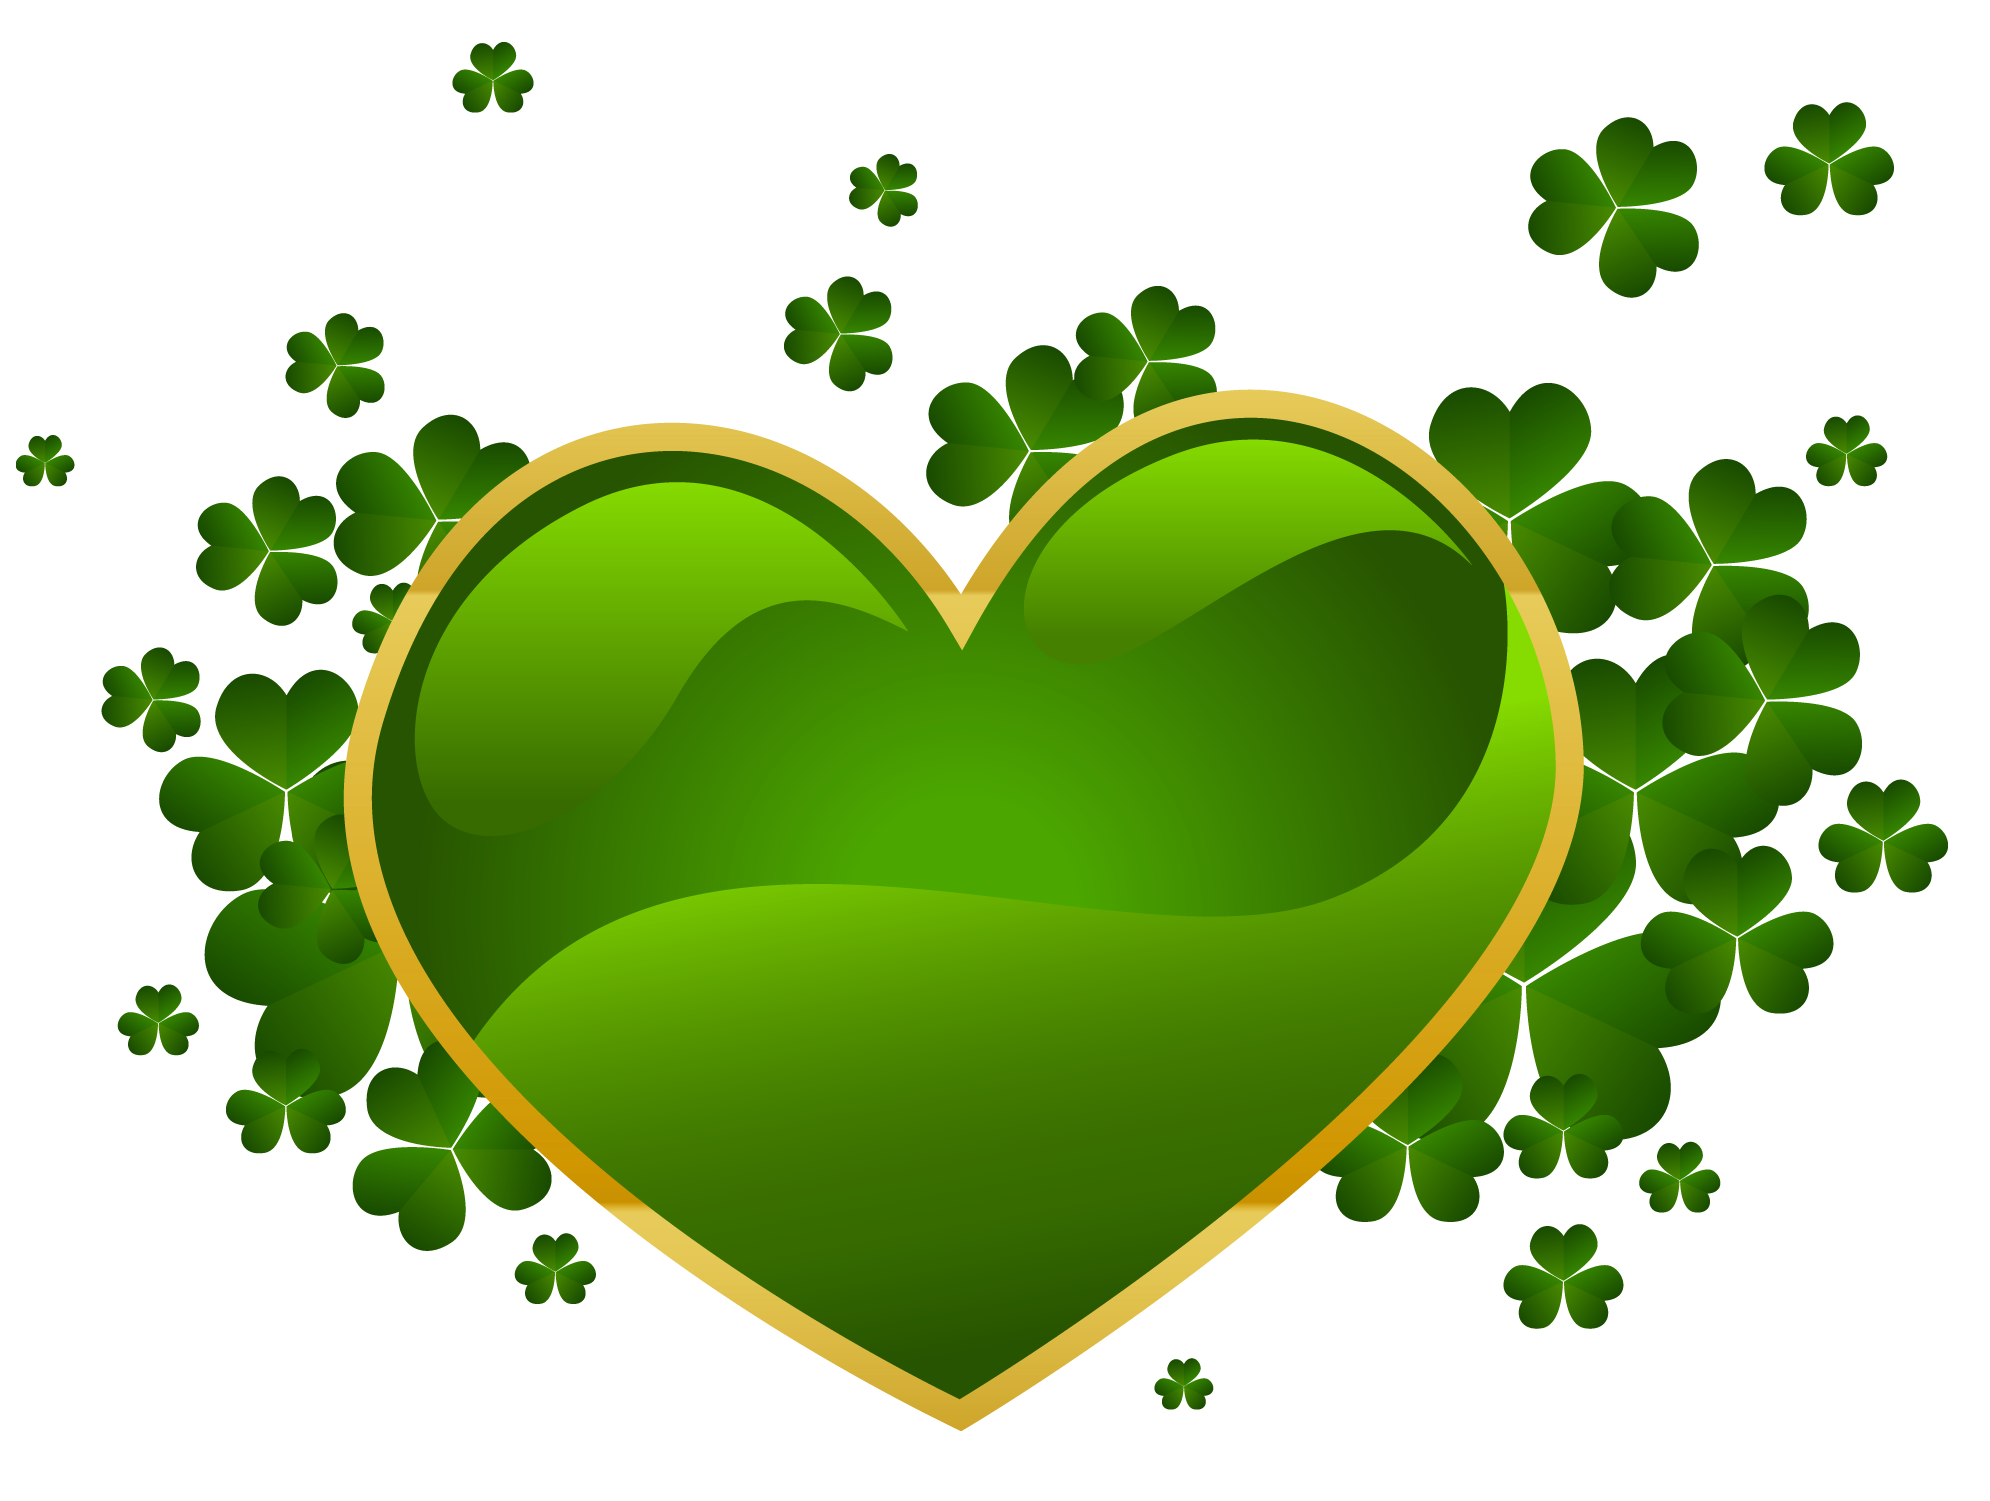 St patricks clipart heart. Day with shamrock png